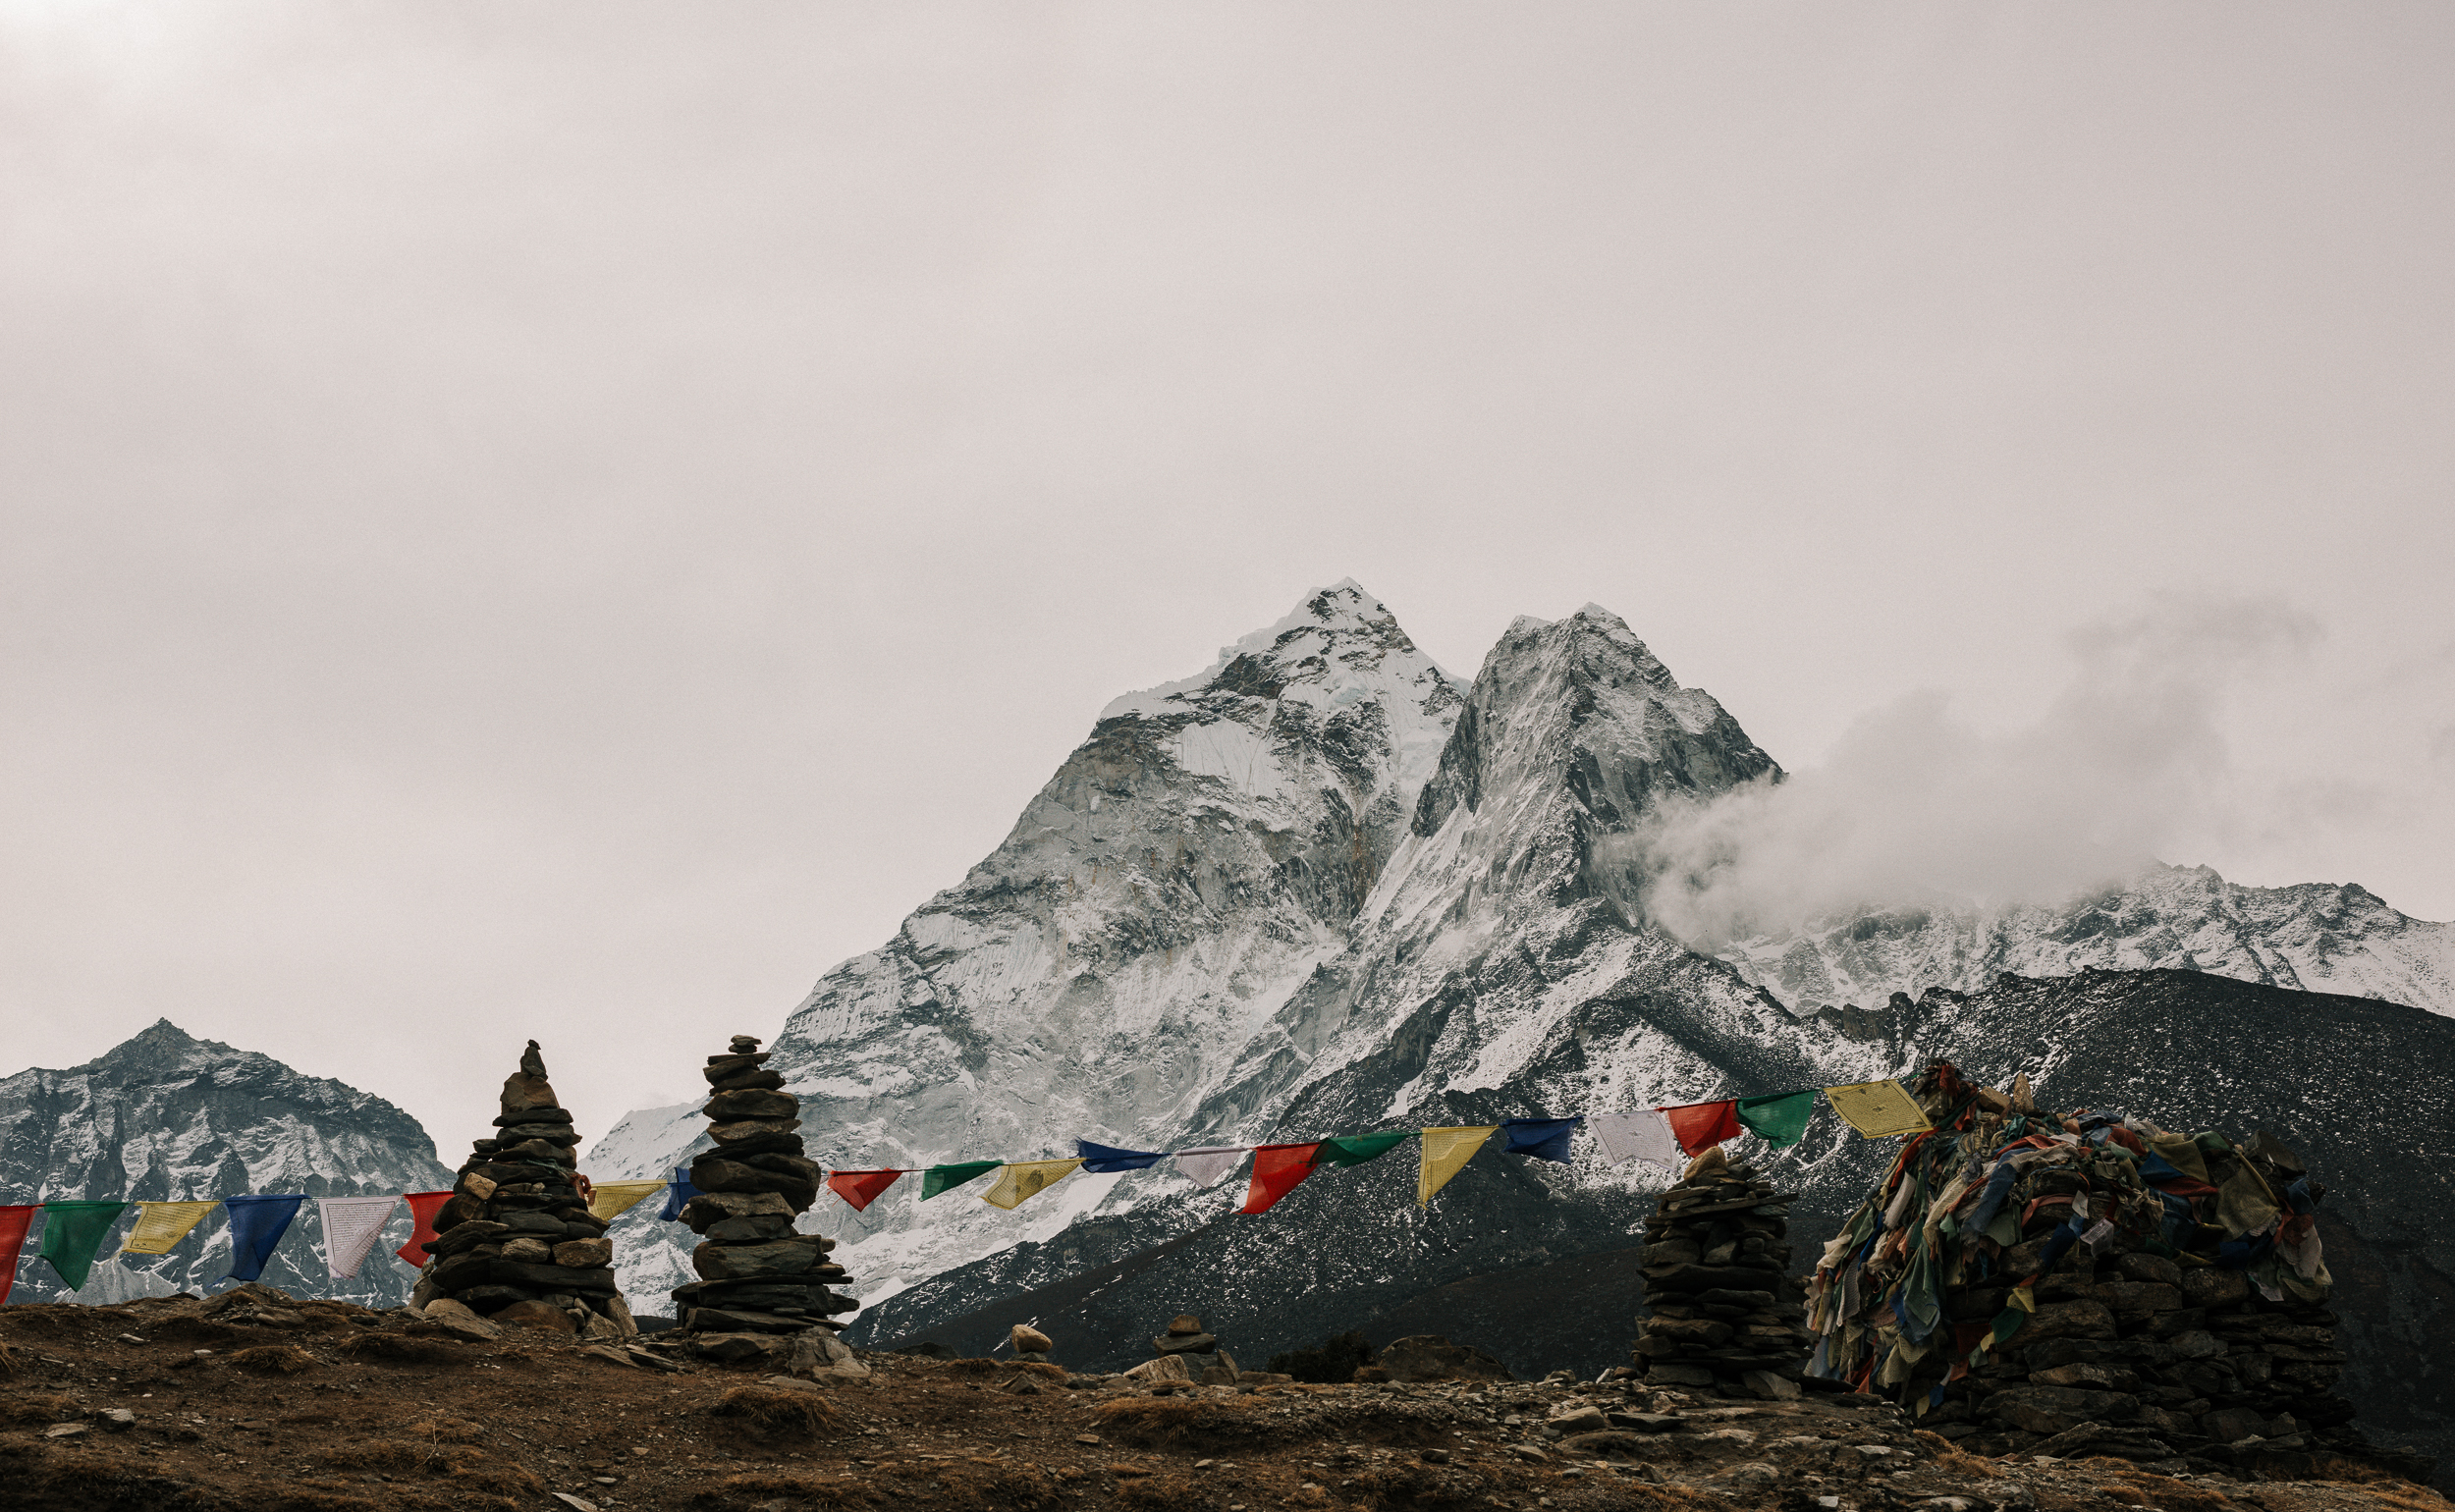 Nepal_EverestBaseCamp_2019_TaraShupe_Photography_DSC_3977.jpg